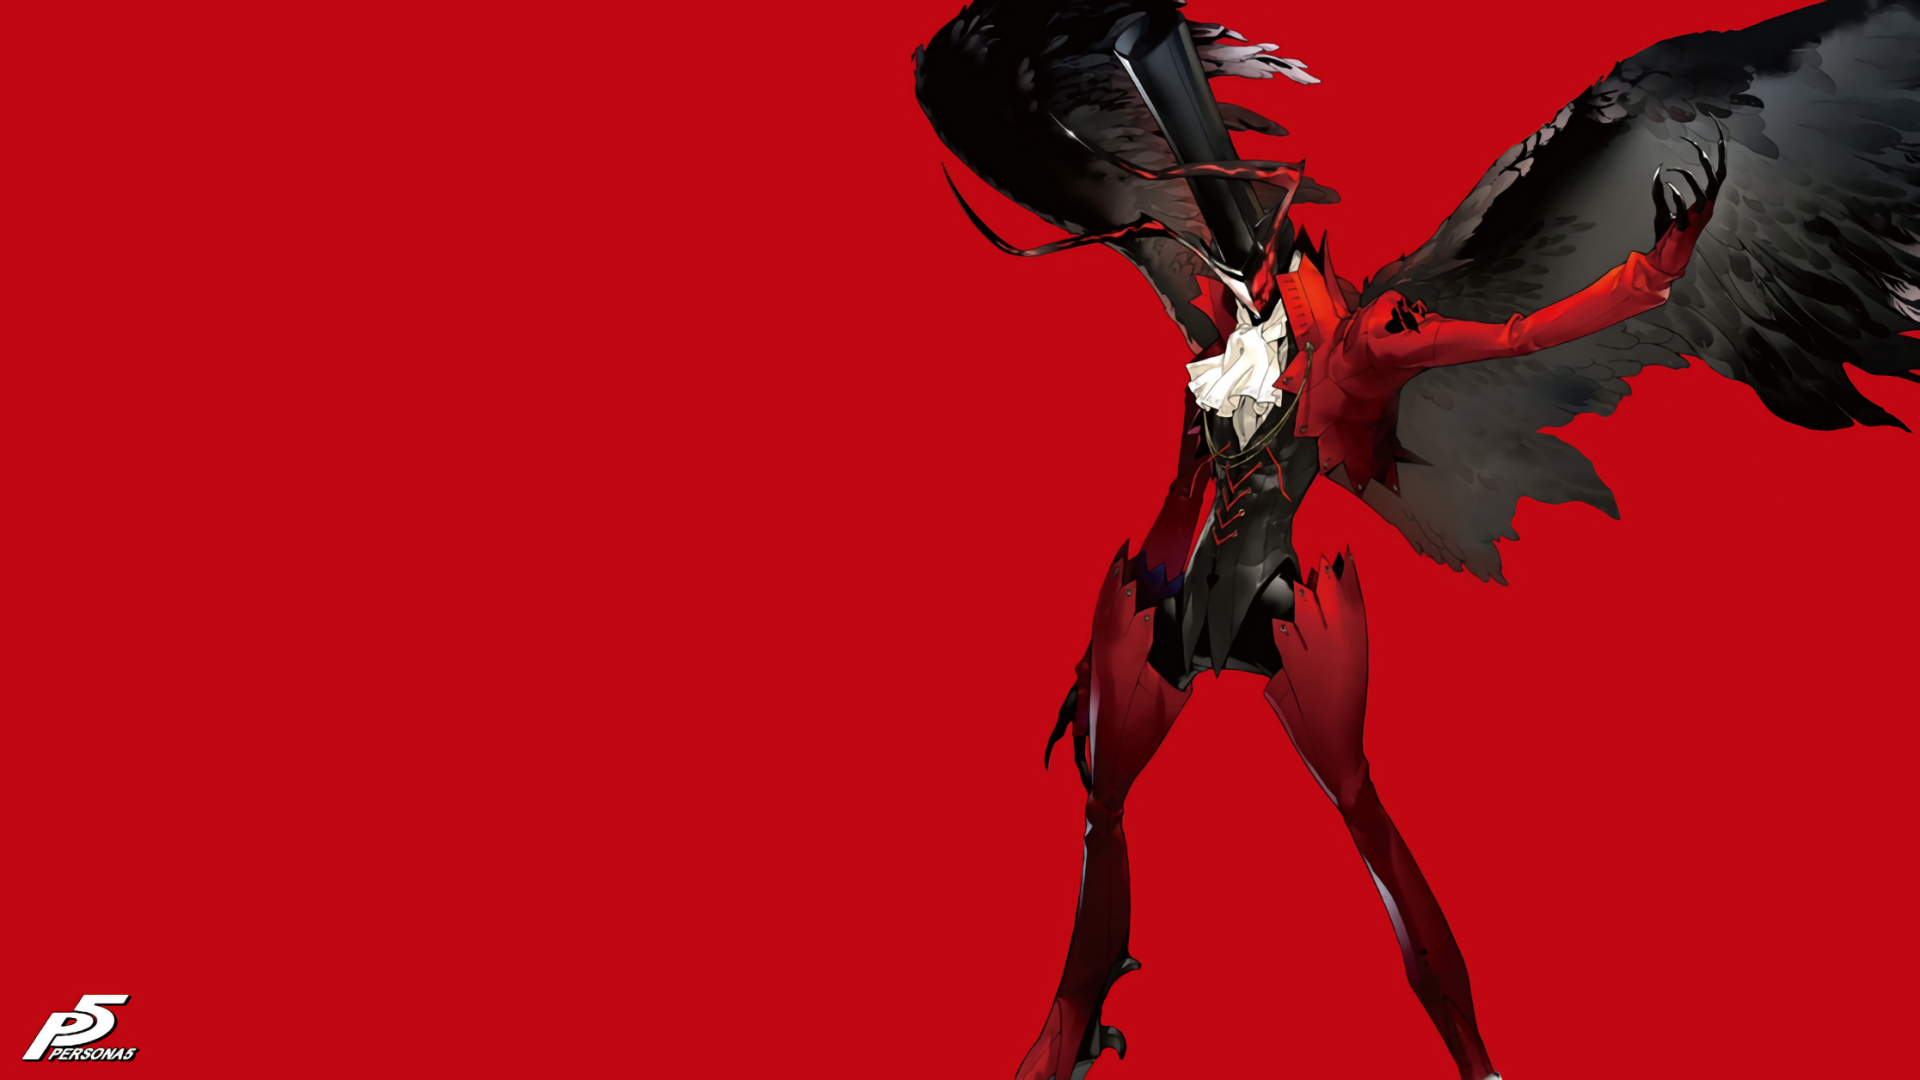 Persona 5 HD Wallpaper and Background Image